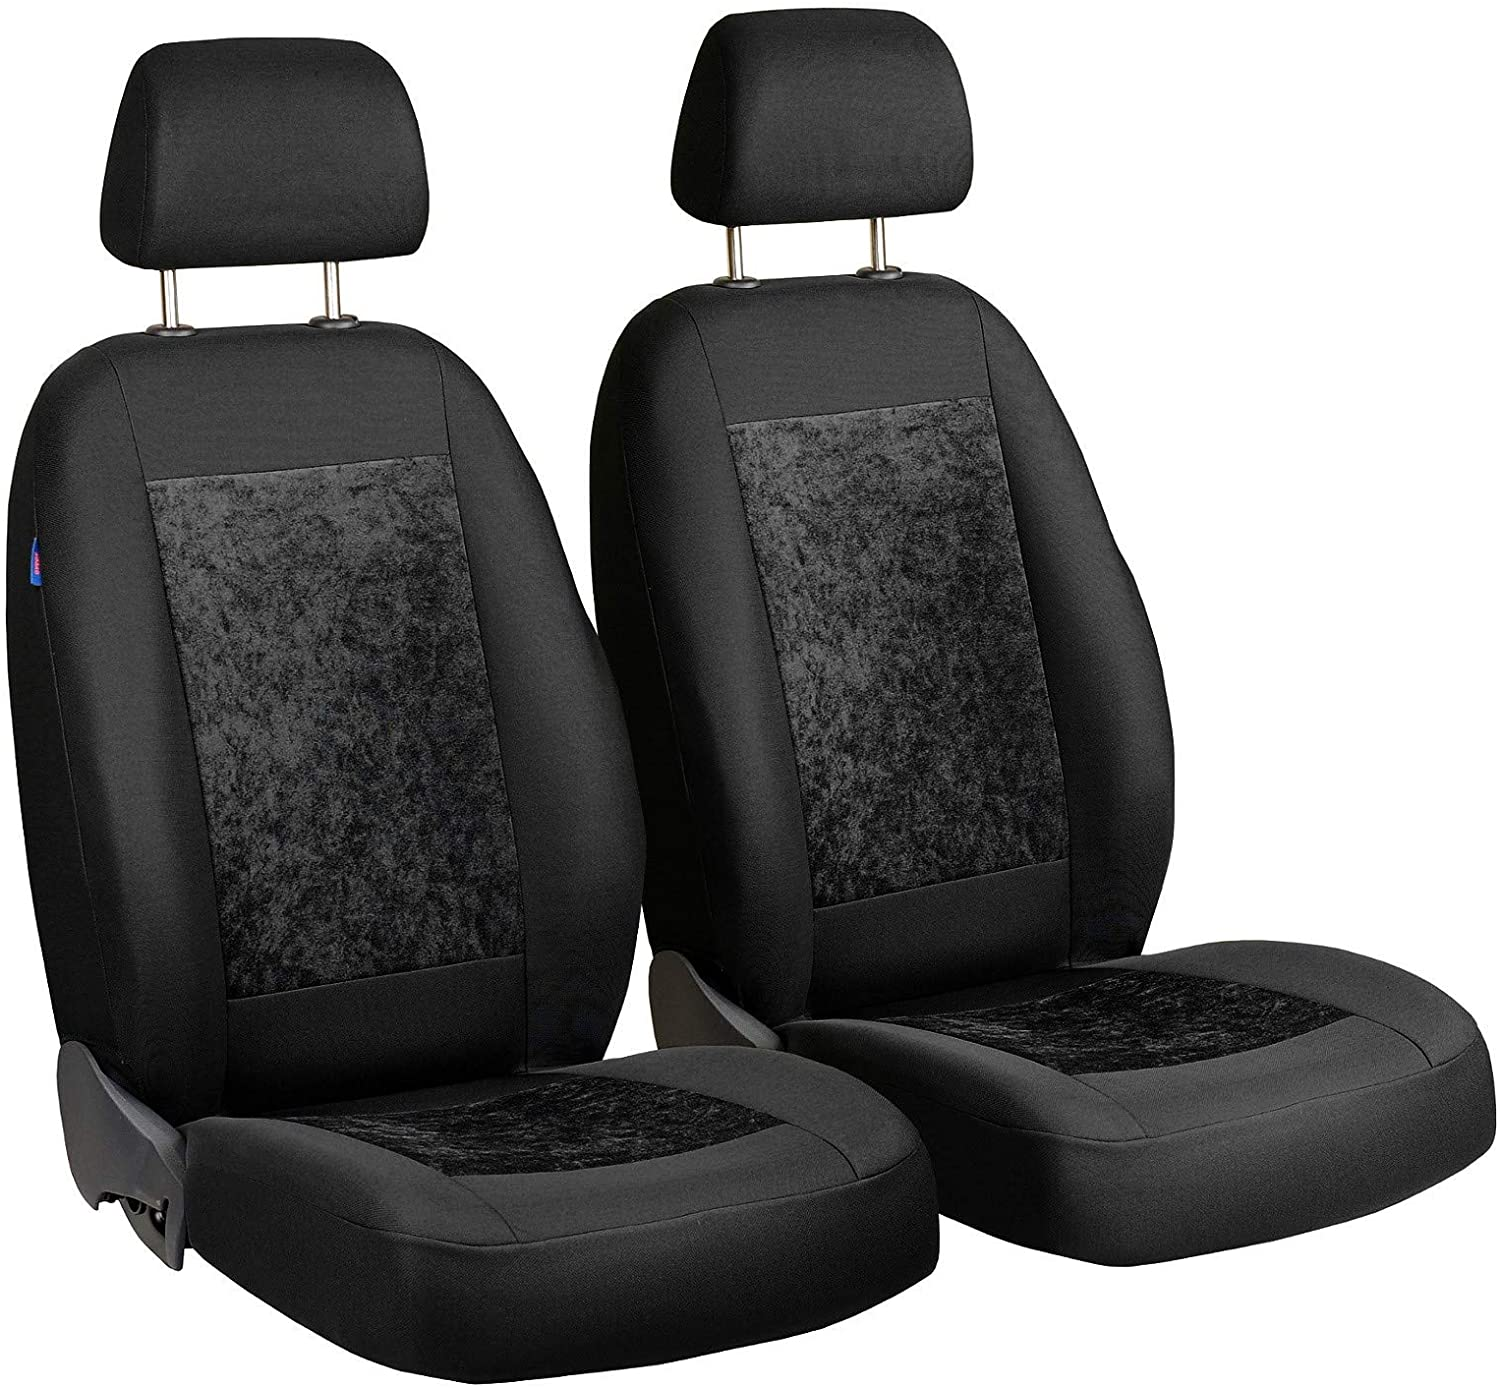 Zakschneider Car seat Covers for Delta - Front Seats - Color Premium Black Velours